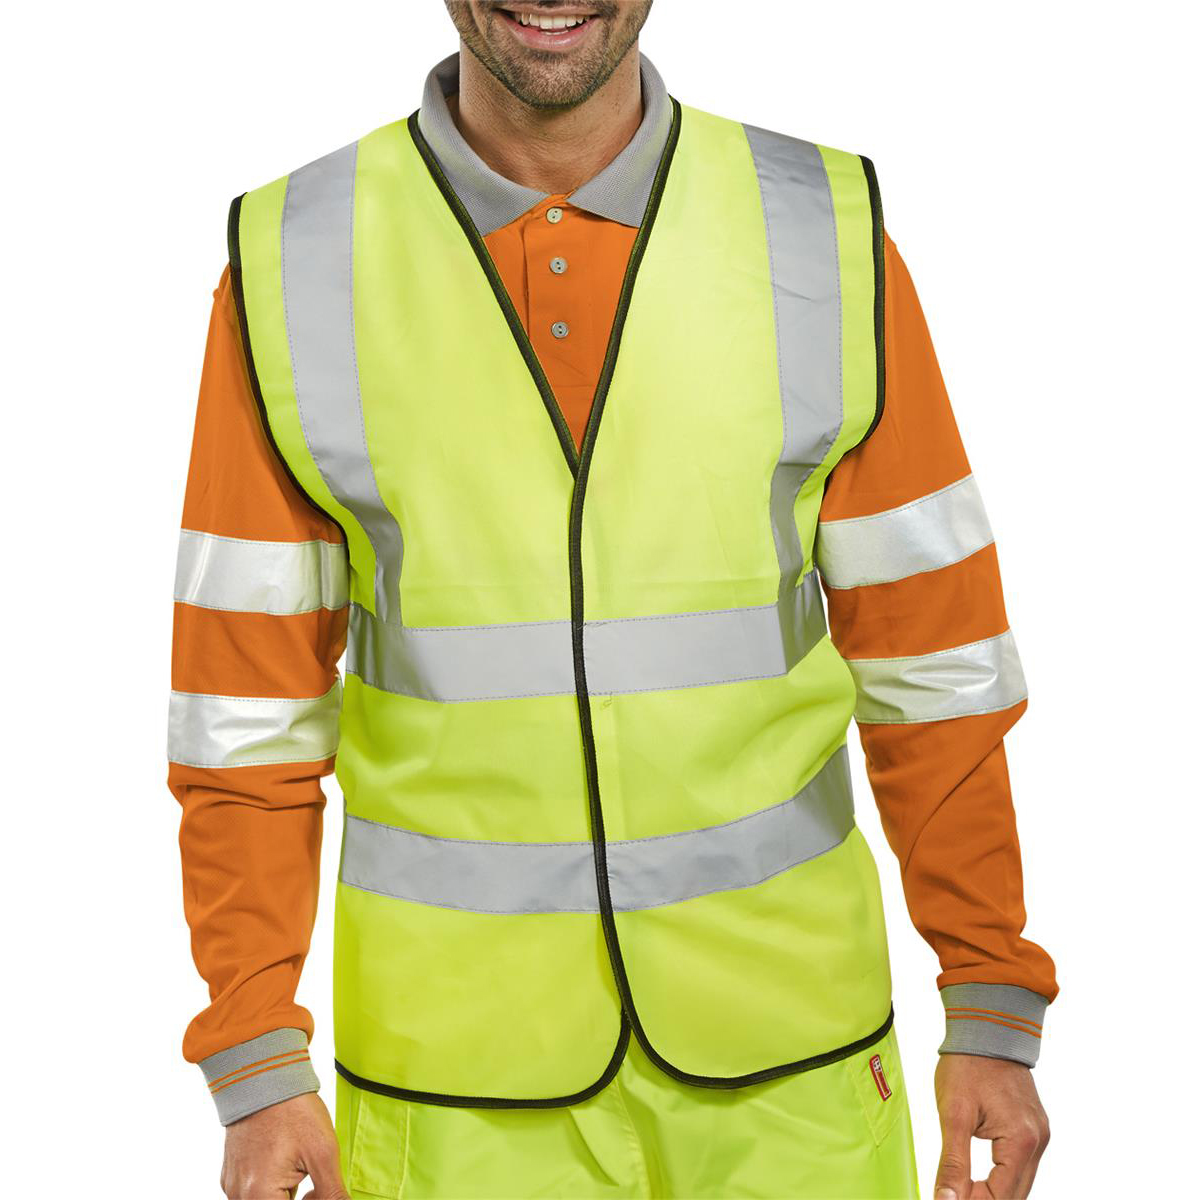 Bseen High Visibility Waistcoat Full App XL Yellow/Black Piping Ref WCENGXL Up to 3 Day Leadtime